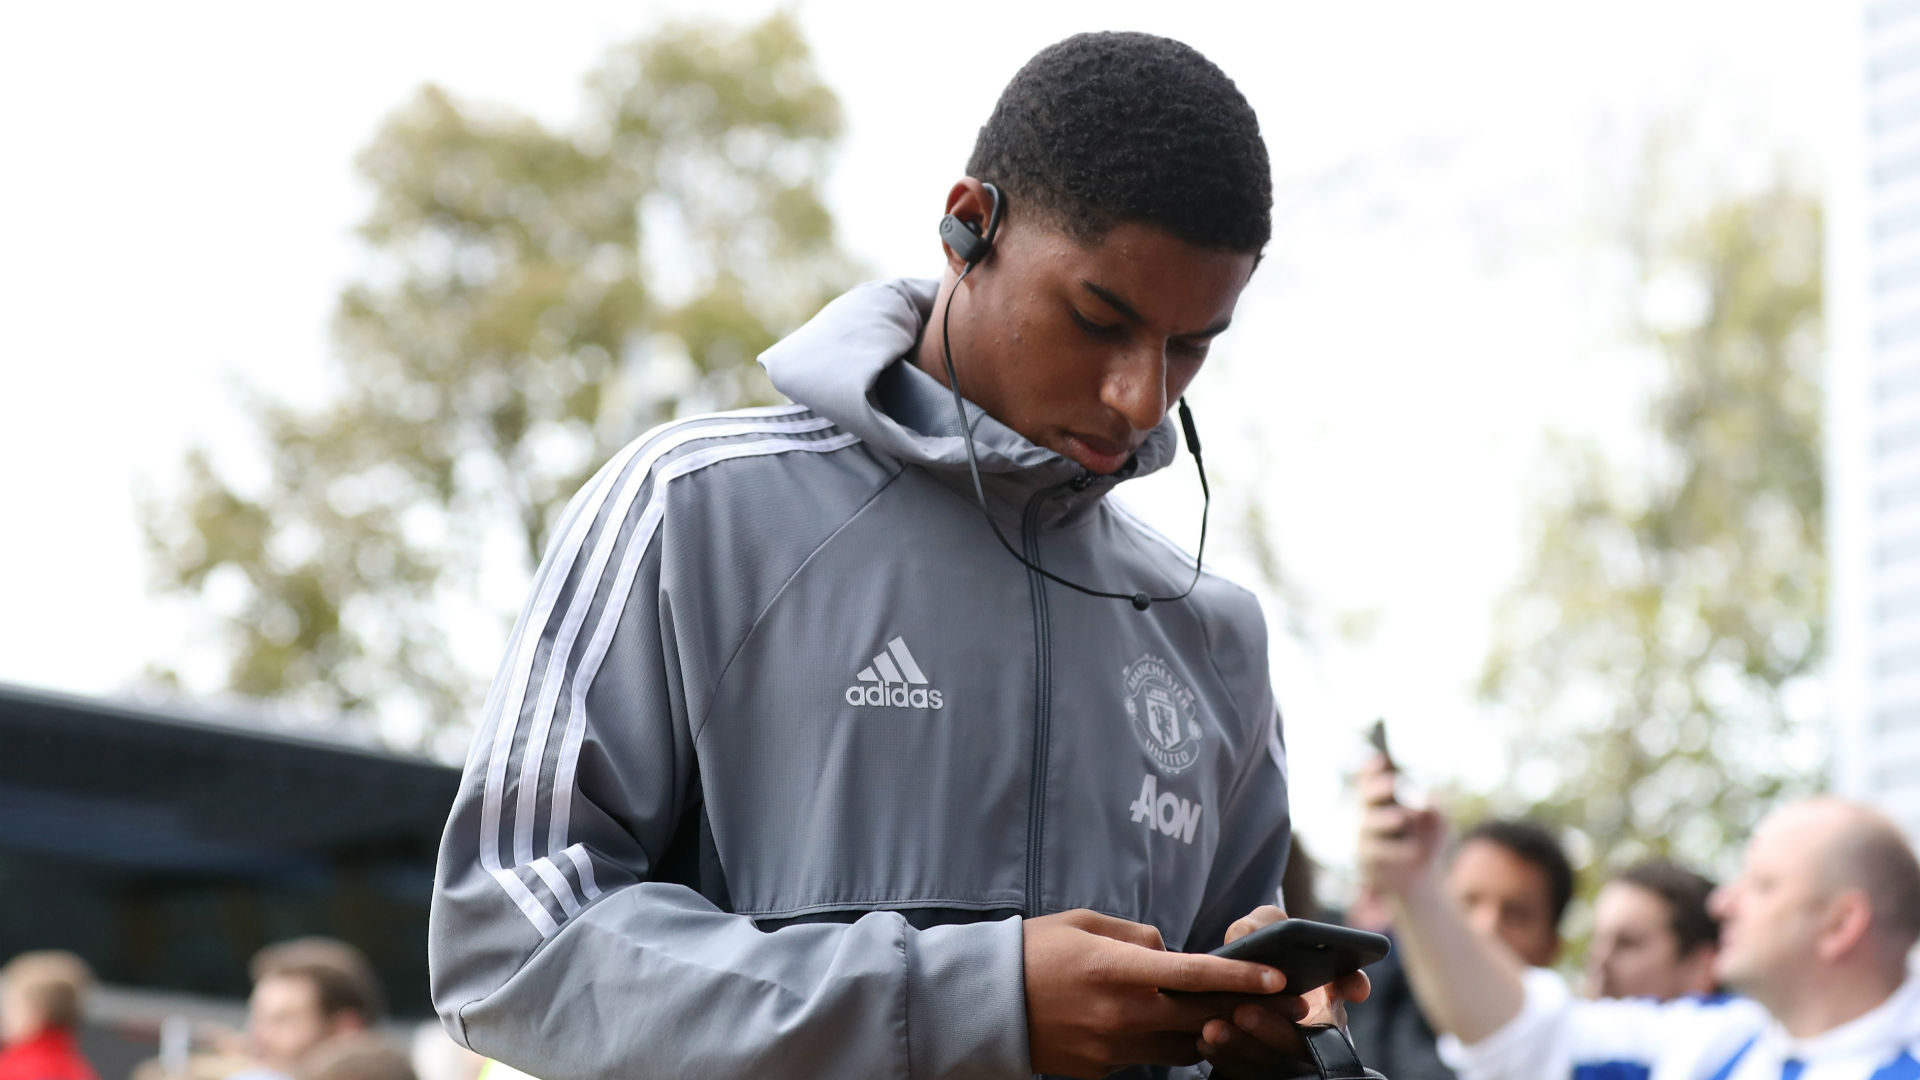 Chelsea legend: Rashford may need to leave Man United